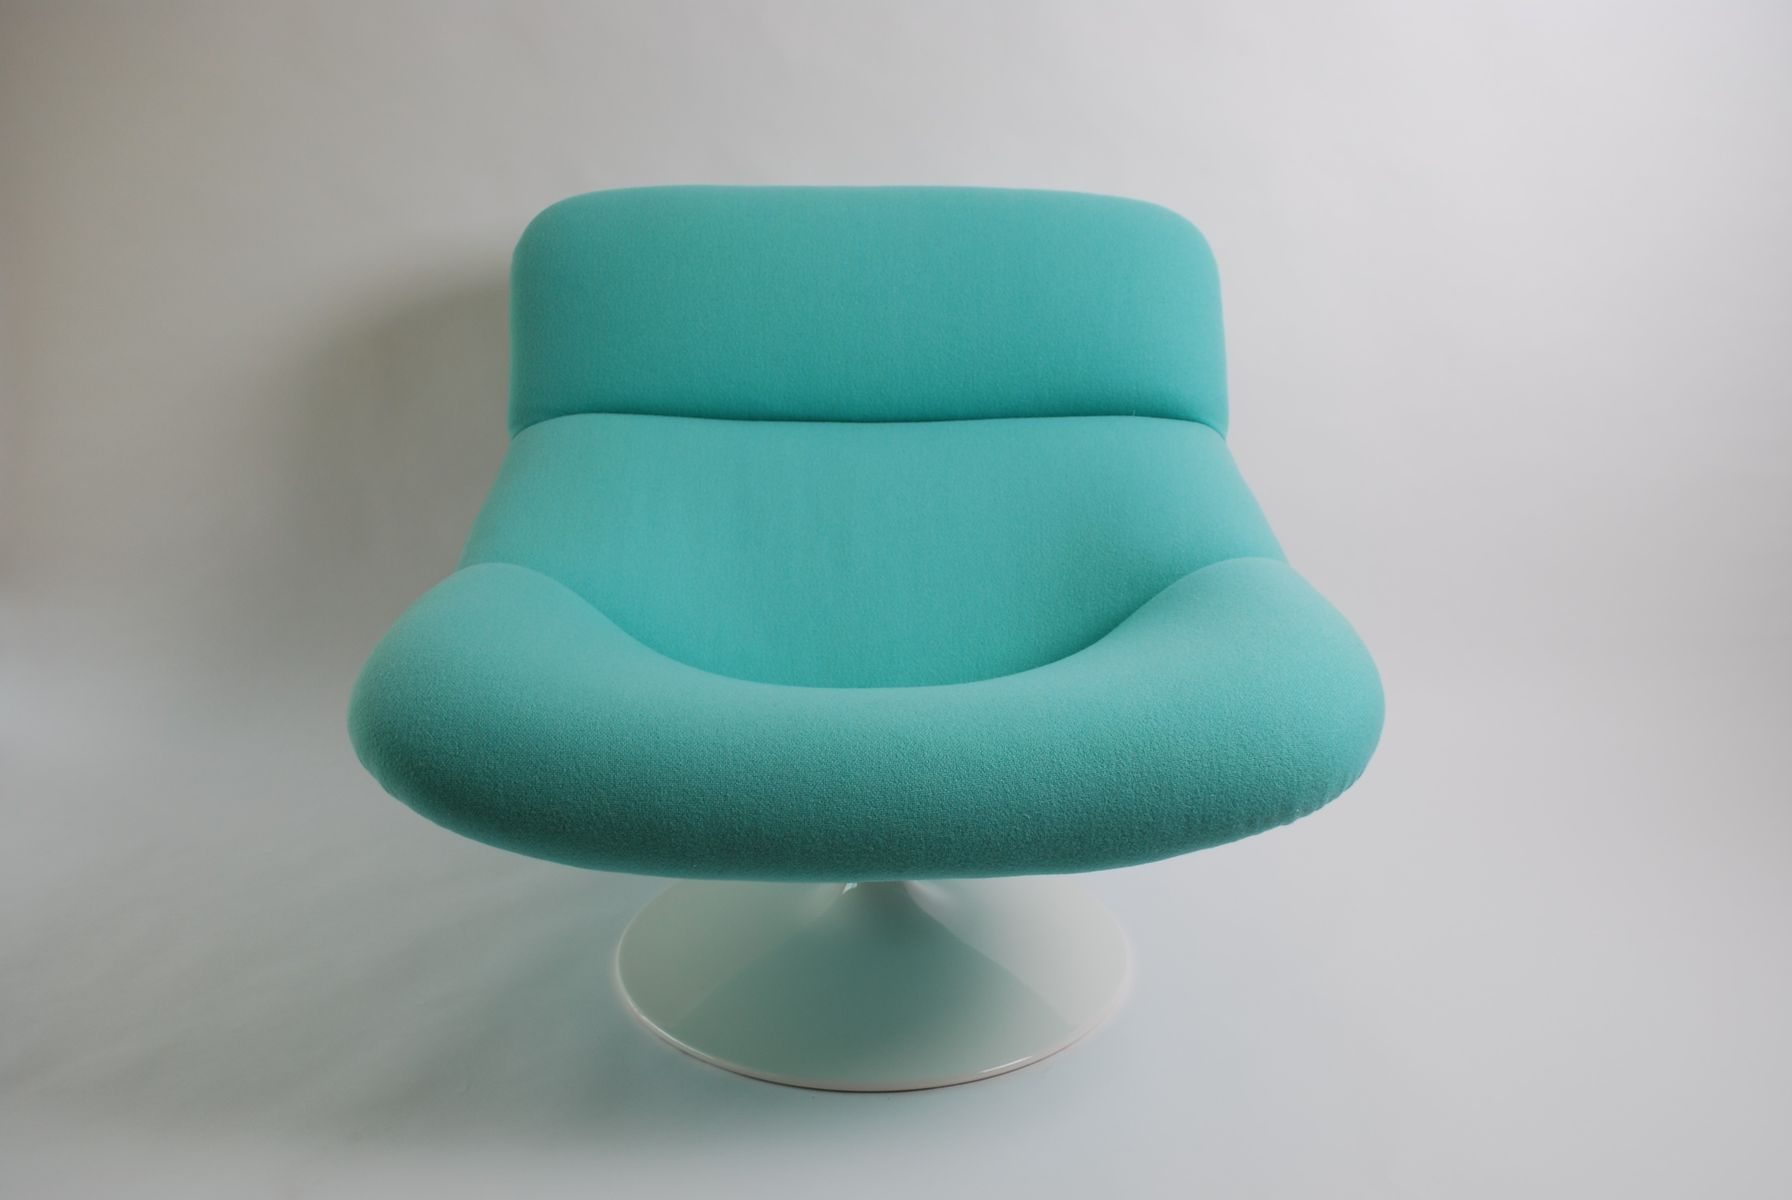 Vintage Aqua Blue F518 Lounge Swivel Chair by Geoffrey Harcourt